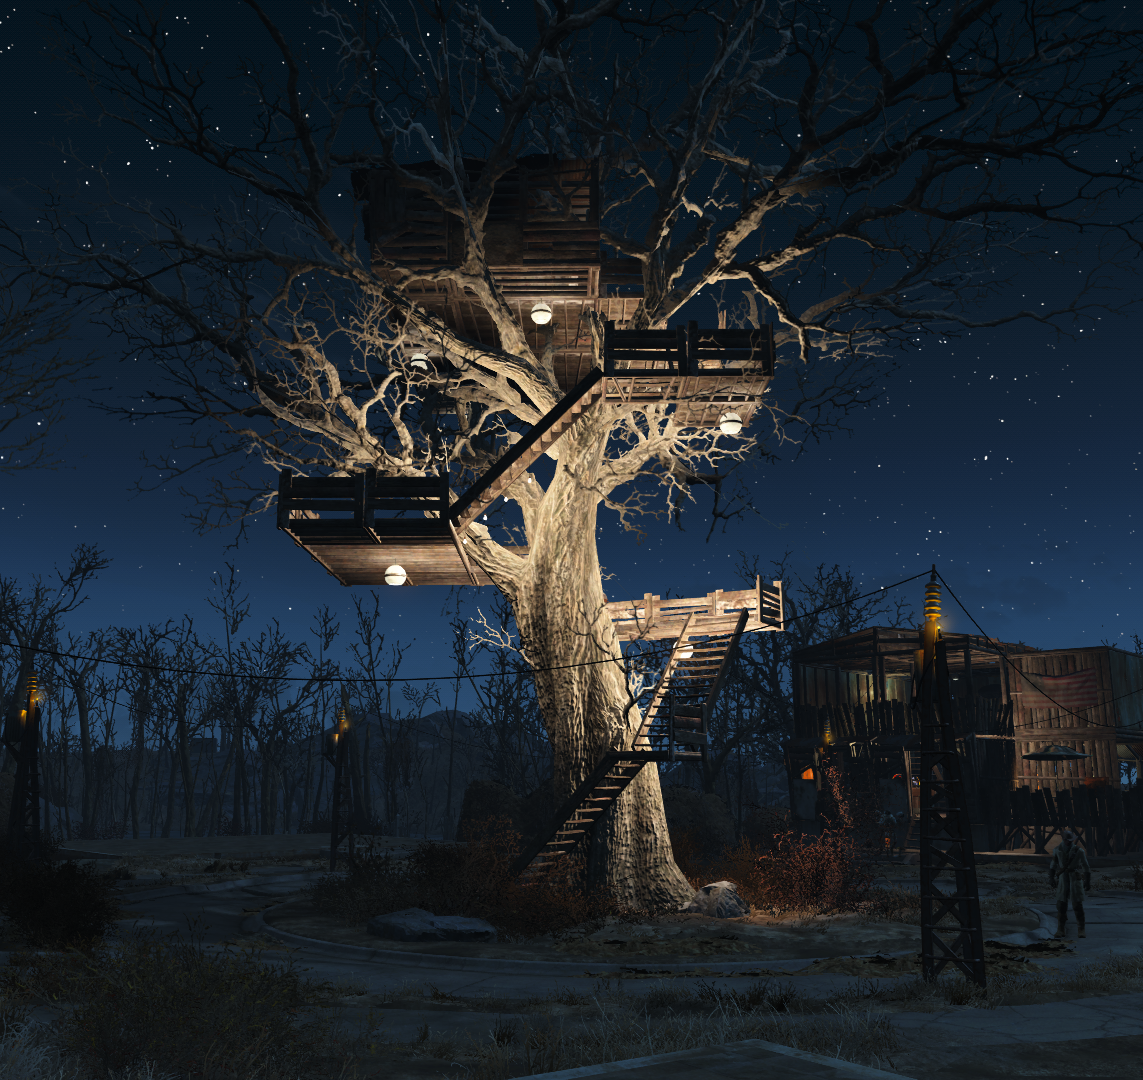 Treehouse fallout 4 death is a preferable alternative for Best house designs fallout 4